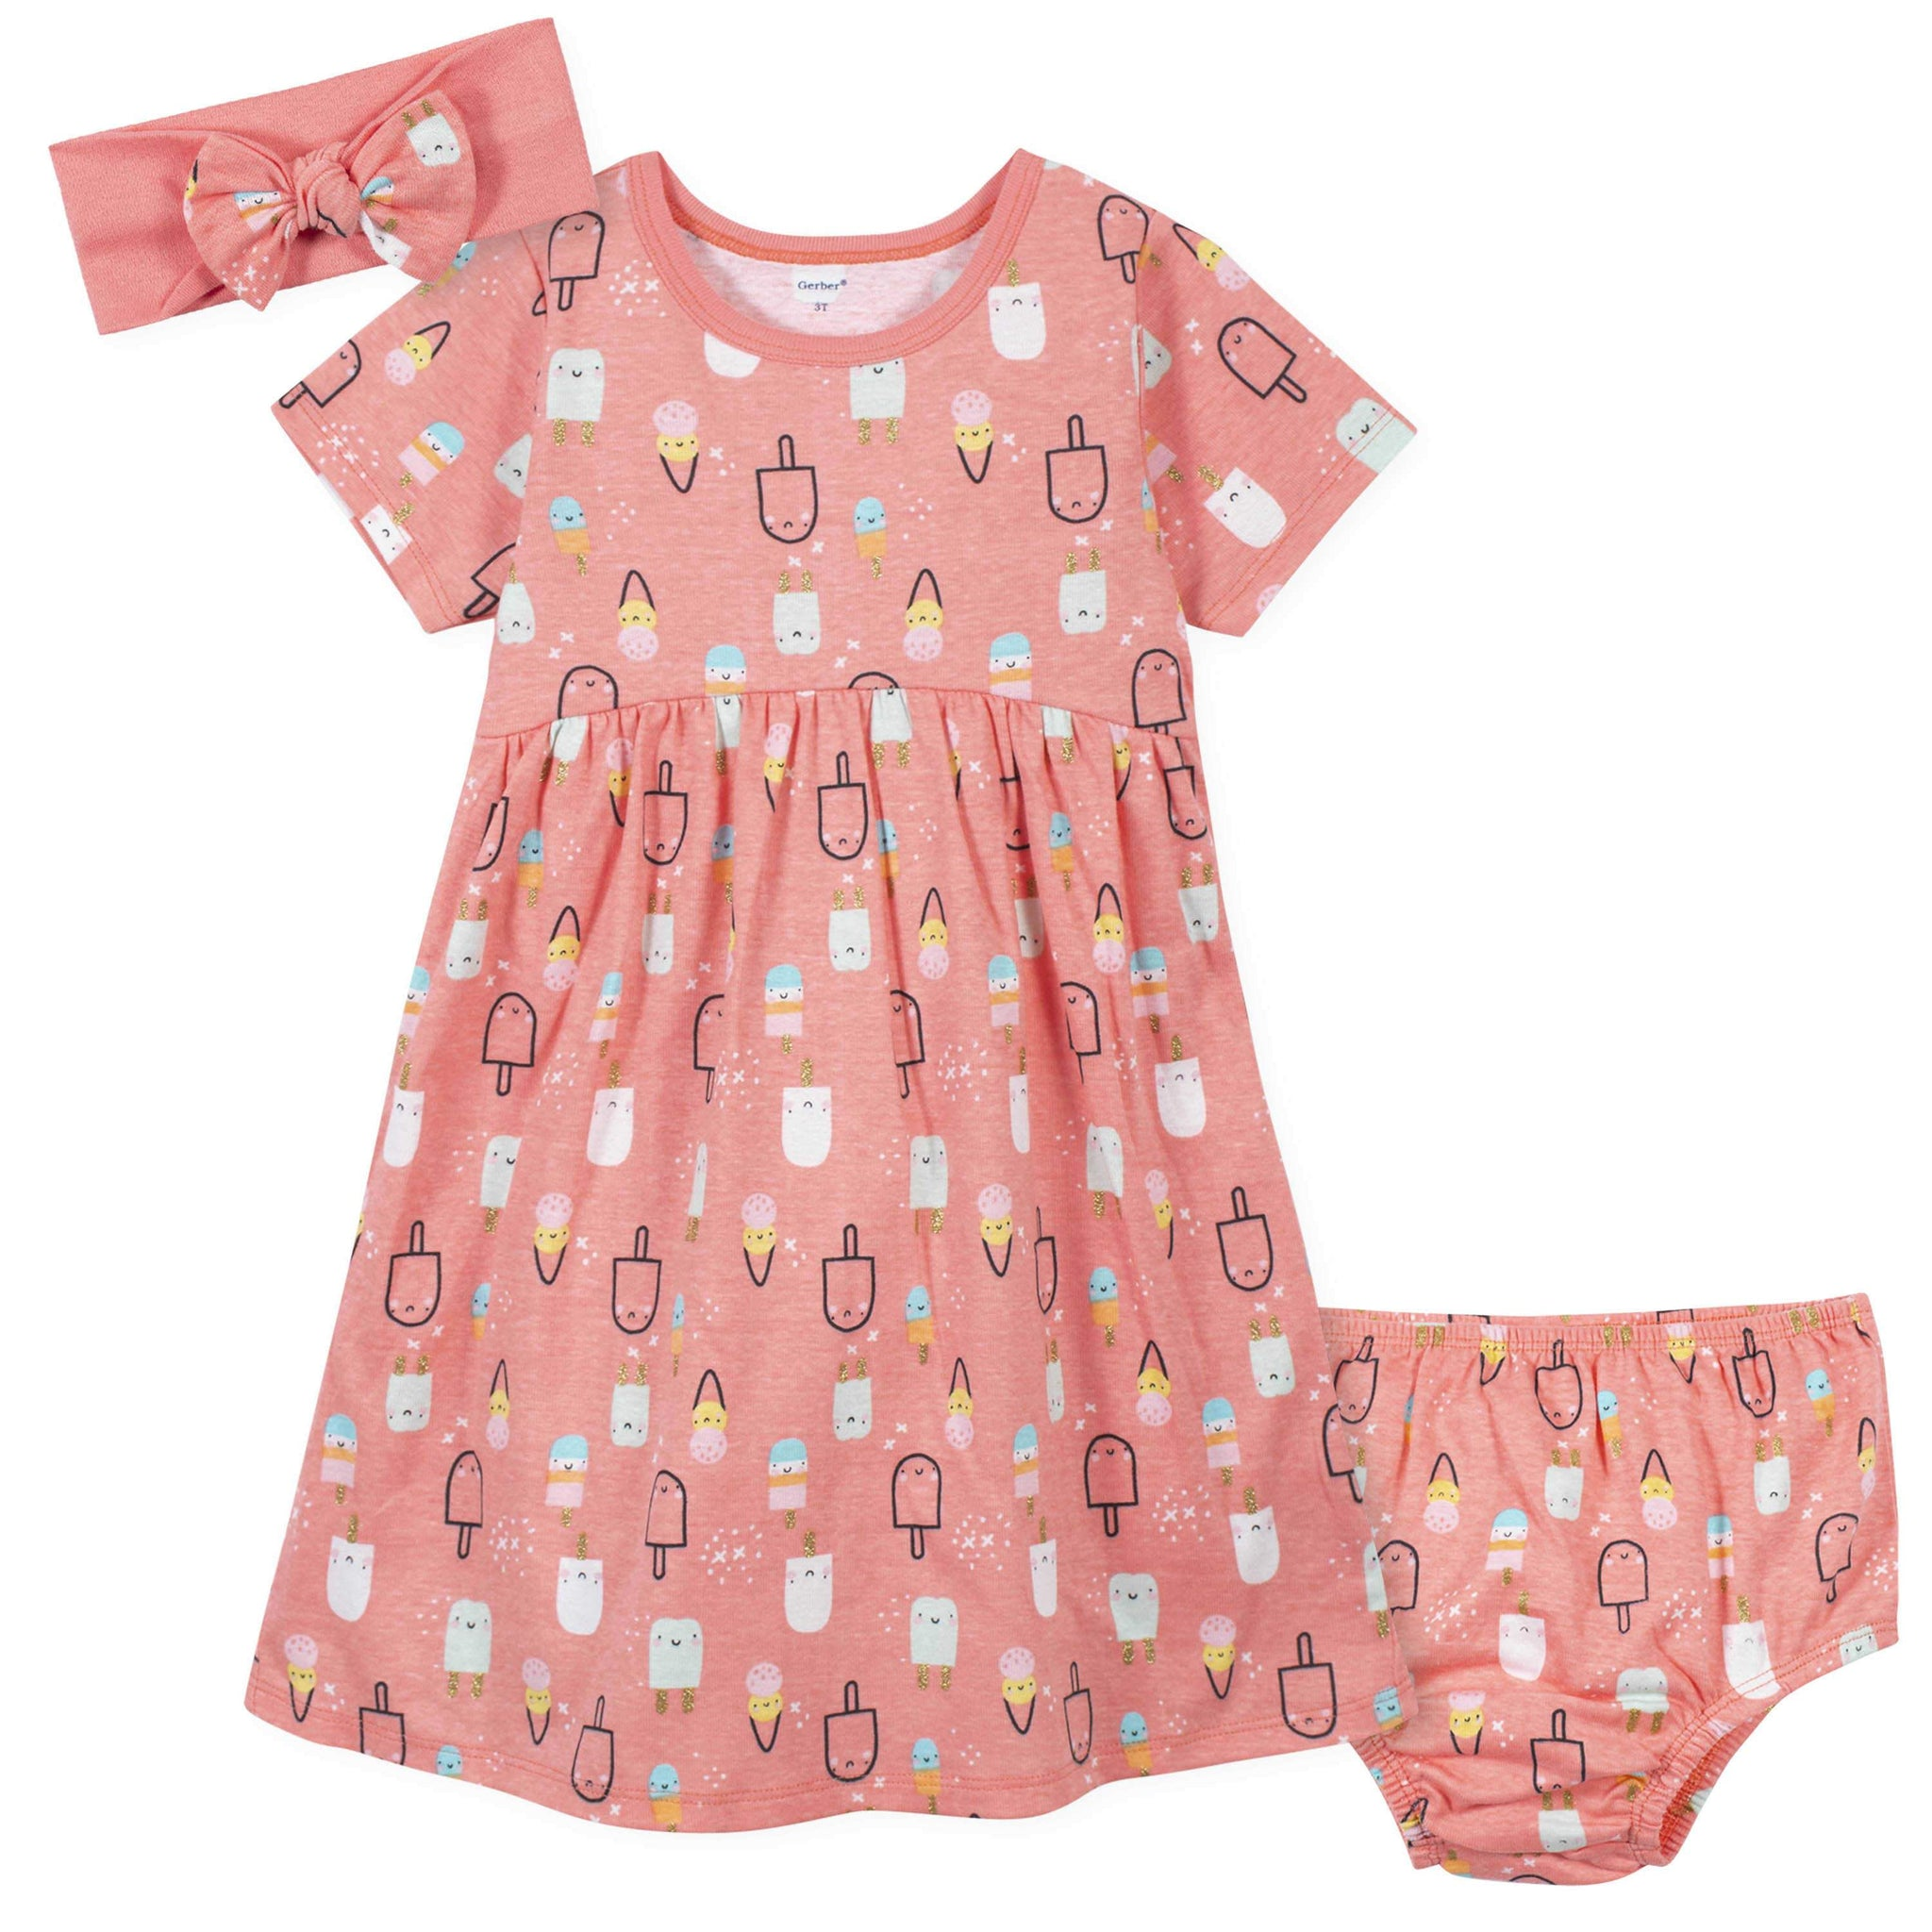 3-Piece Toddler Girls PopsiclesDress, Diaper Cover, and Headband Set